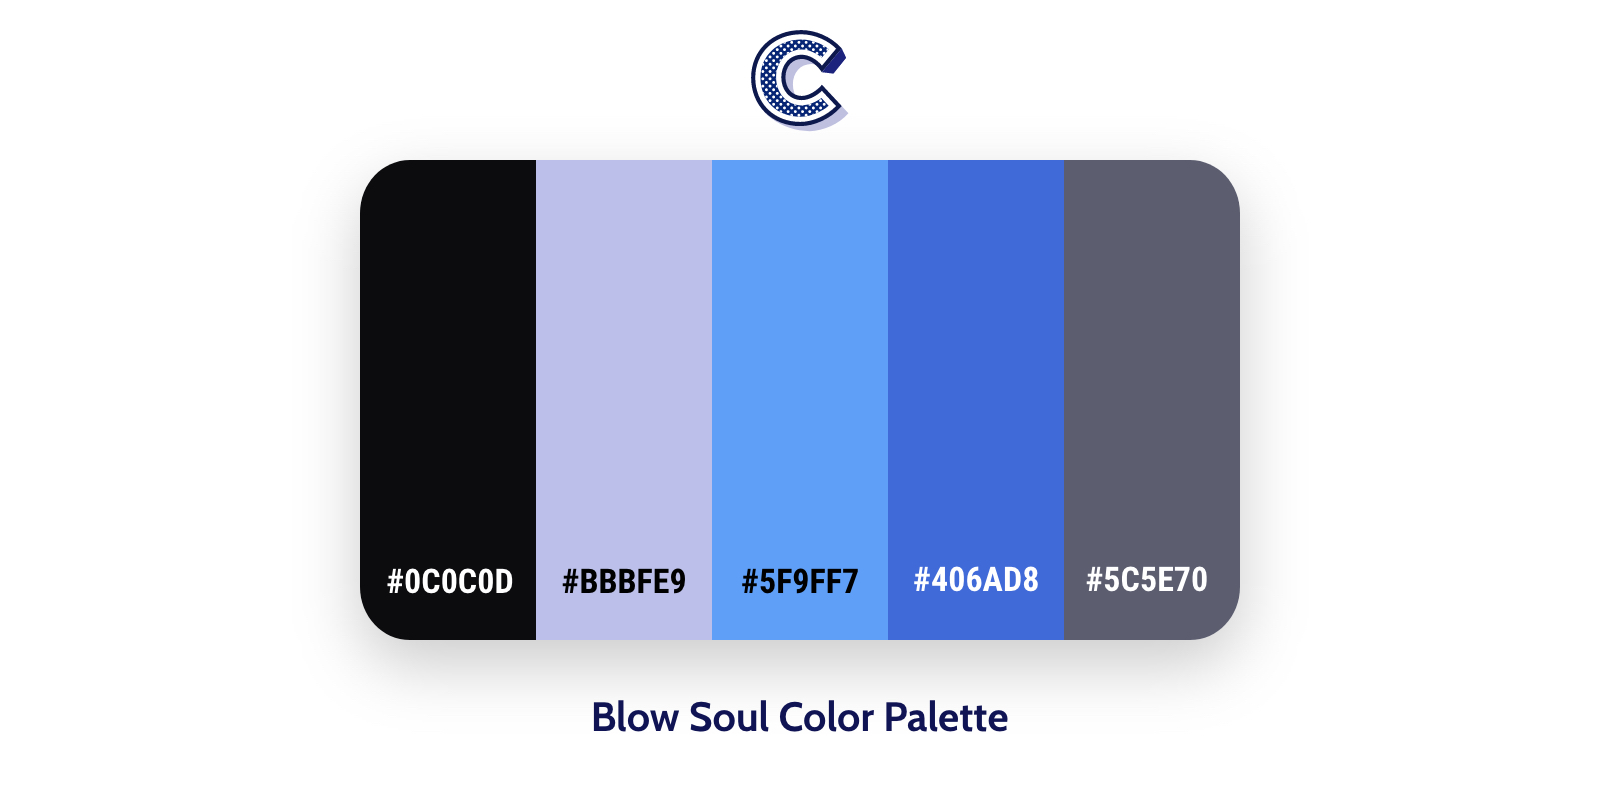 the featured image of blow soul color palette